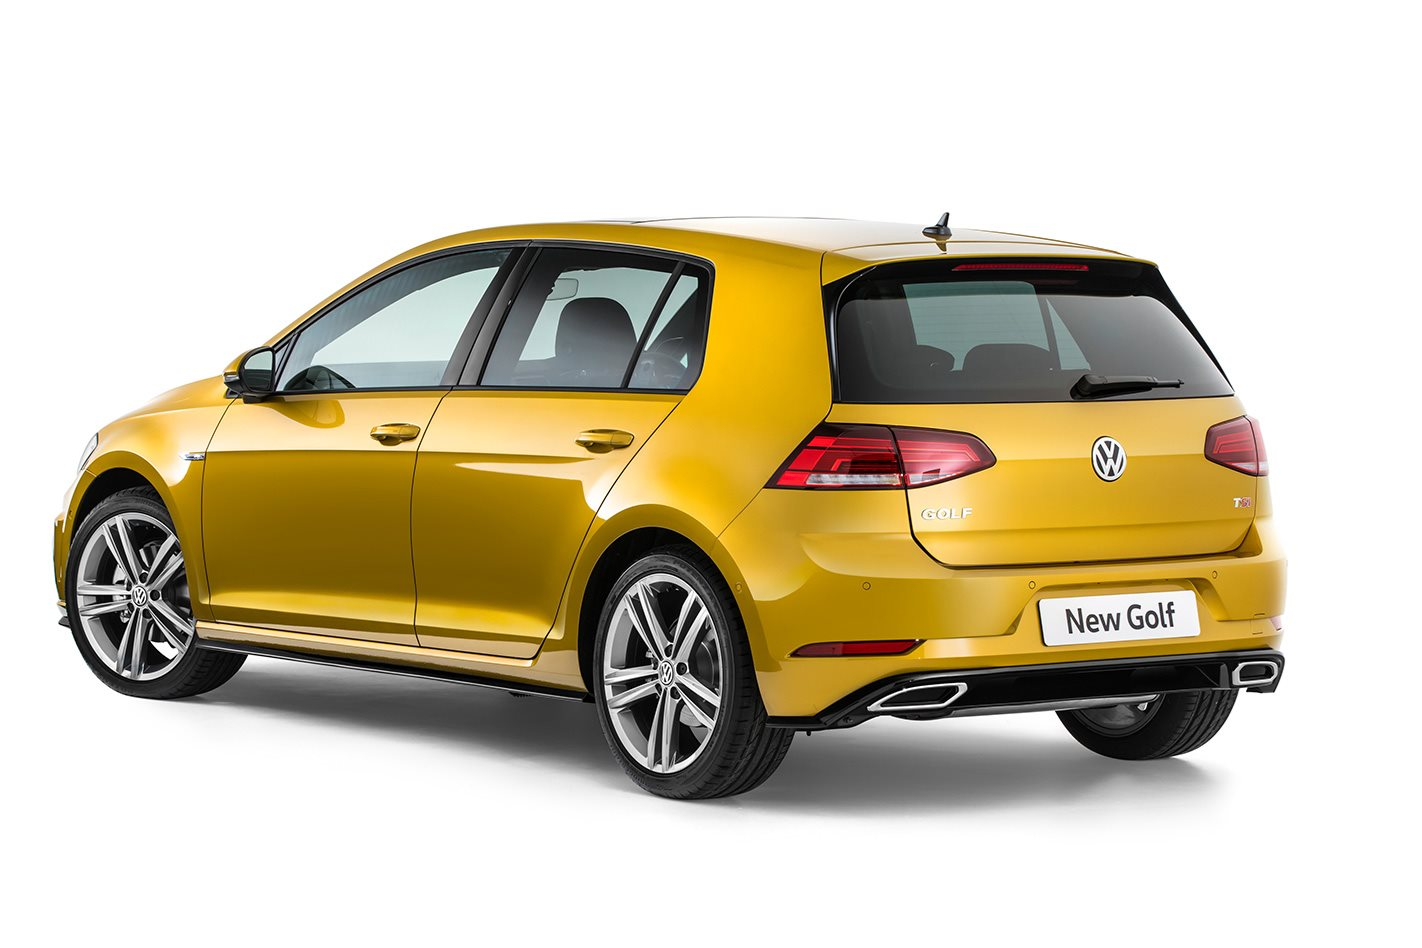 2019 Volkswagen Golf prices and features announced